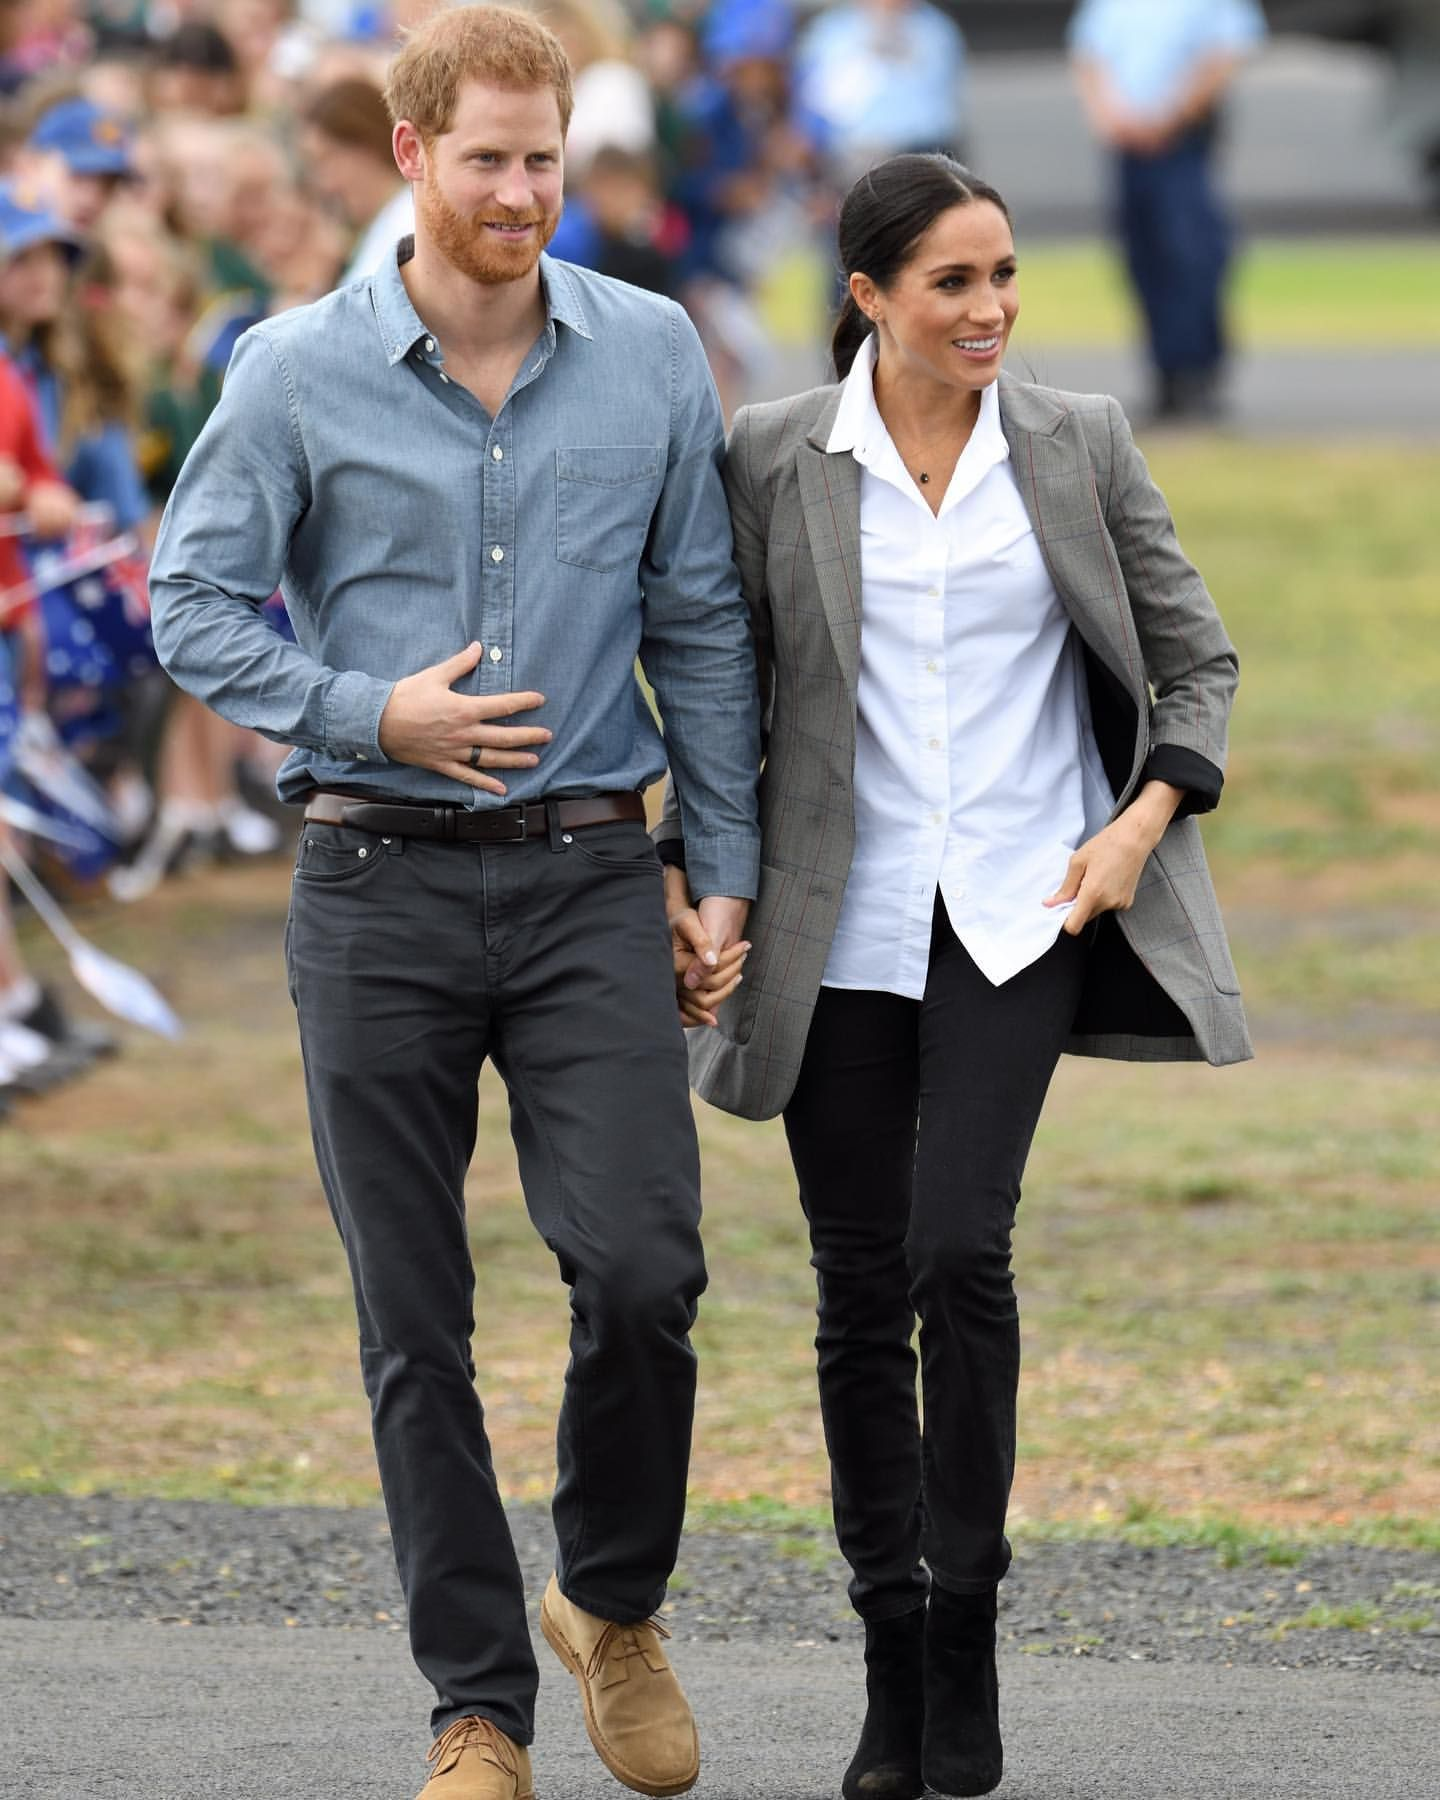 Pin by Sedona on The Royal Family in 2020 Meghan markle